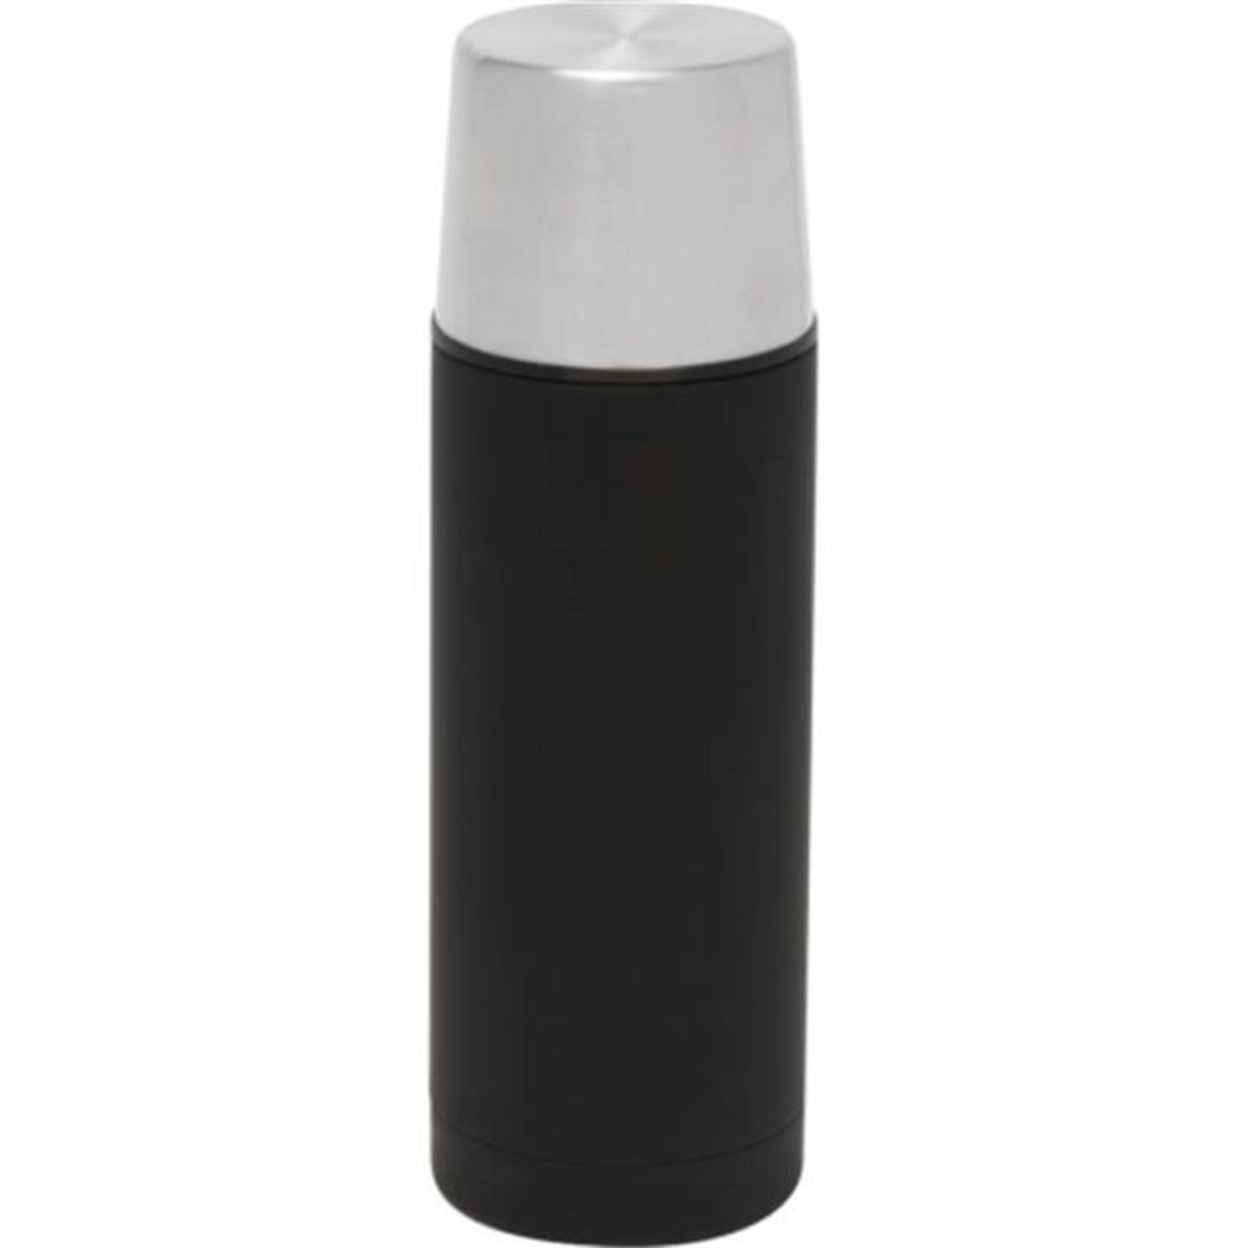 Bnfusa Ktvb32Blk 32 oz. Stainless Steel Vacuum Bottle with Black Rubber-Touch Finish 5a3c7ab82a00e46aee16dfa2